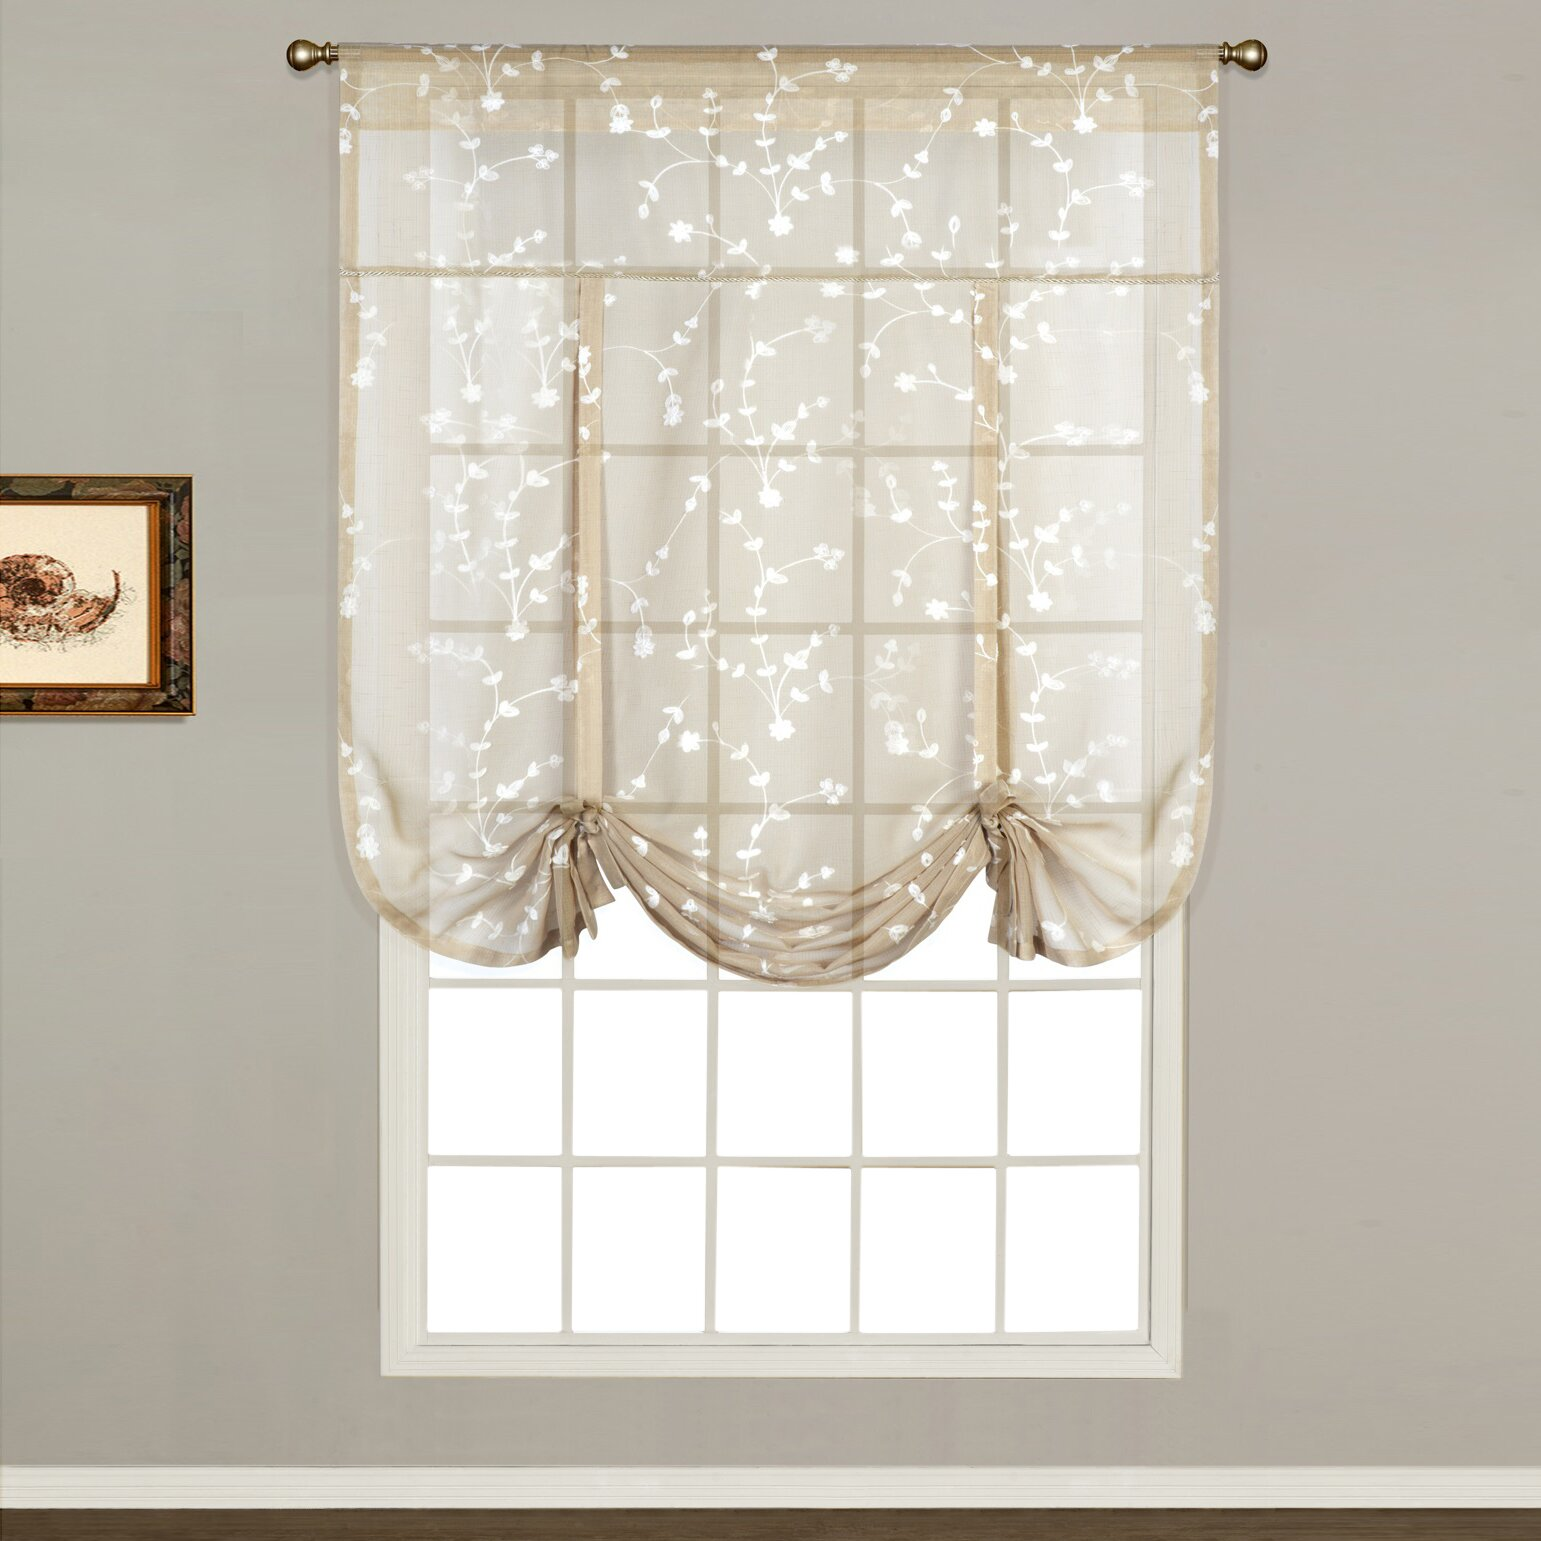 Sheer white bedroom curtains - Savannah Sheer Tie Up Shade Single Curtain Panel